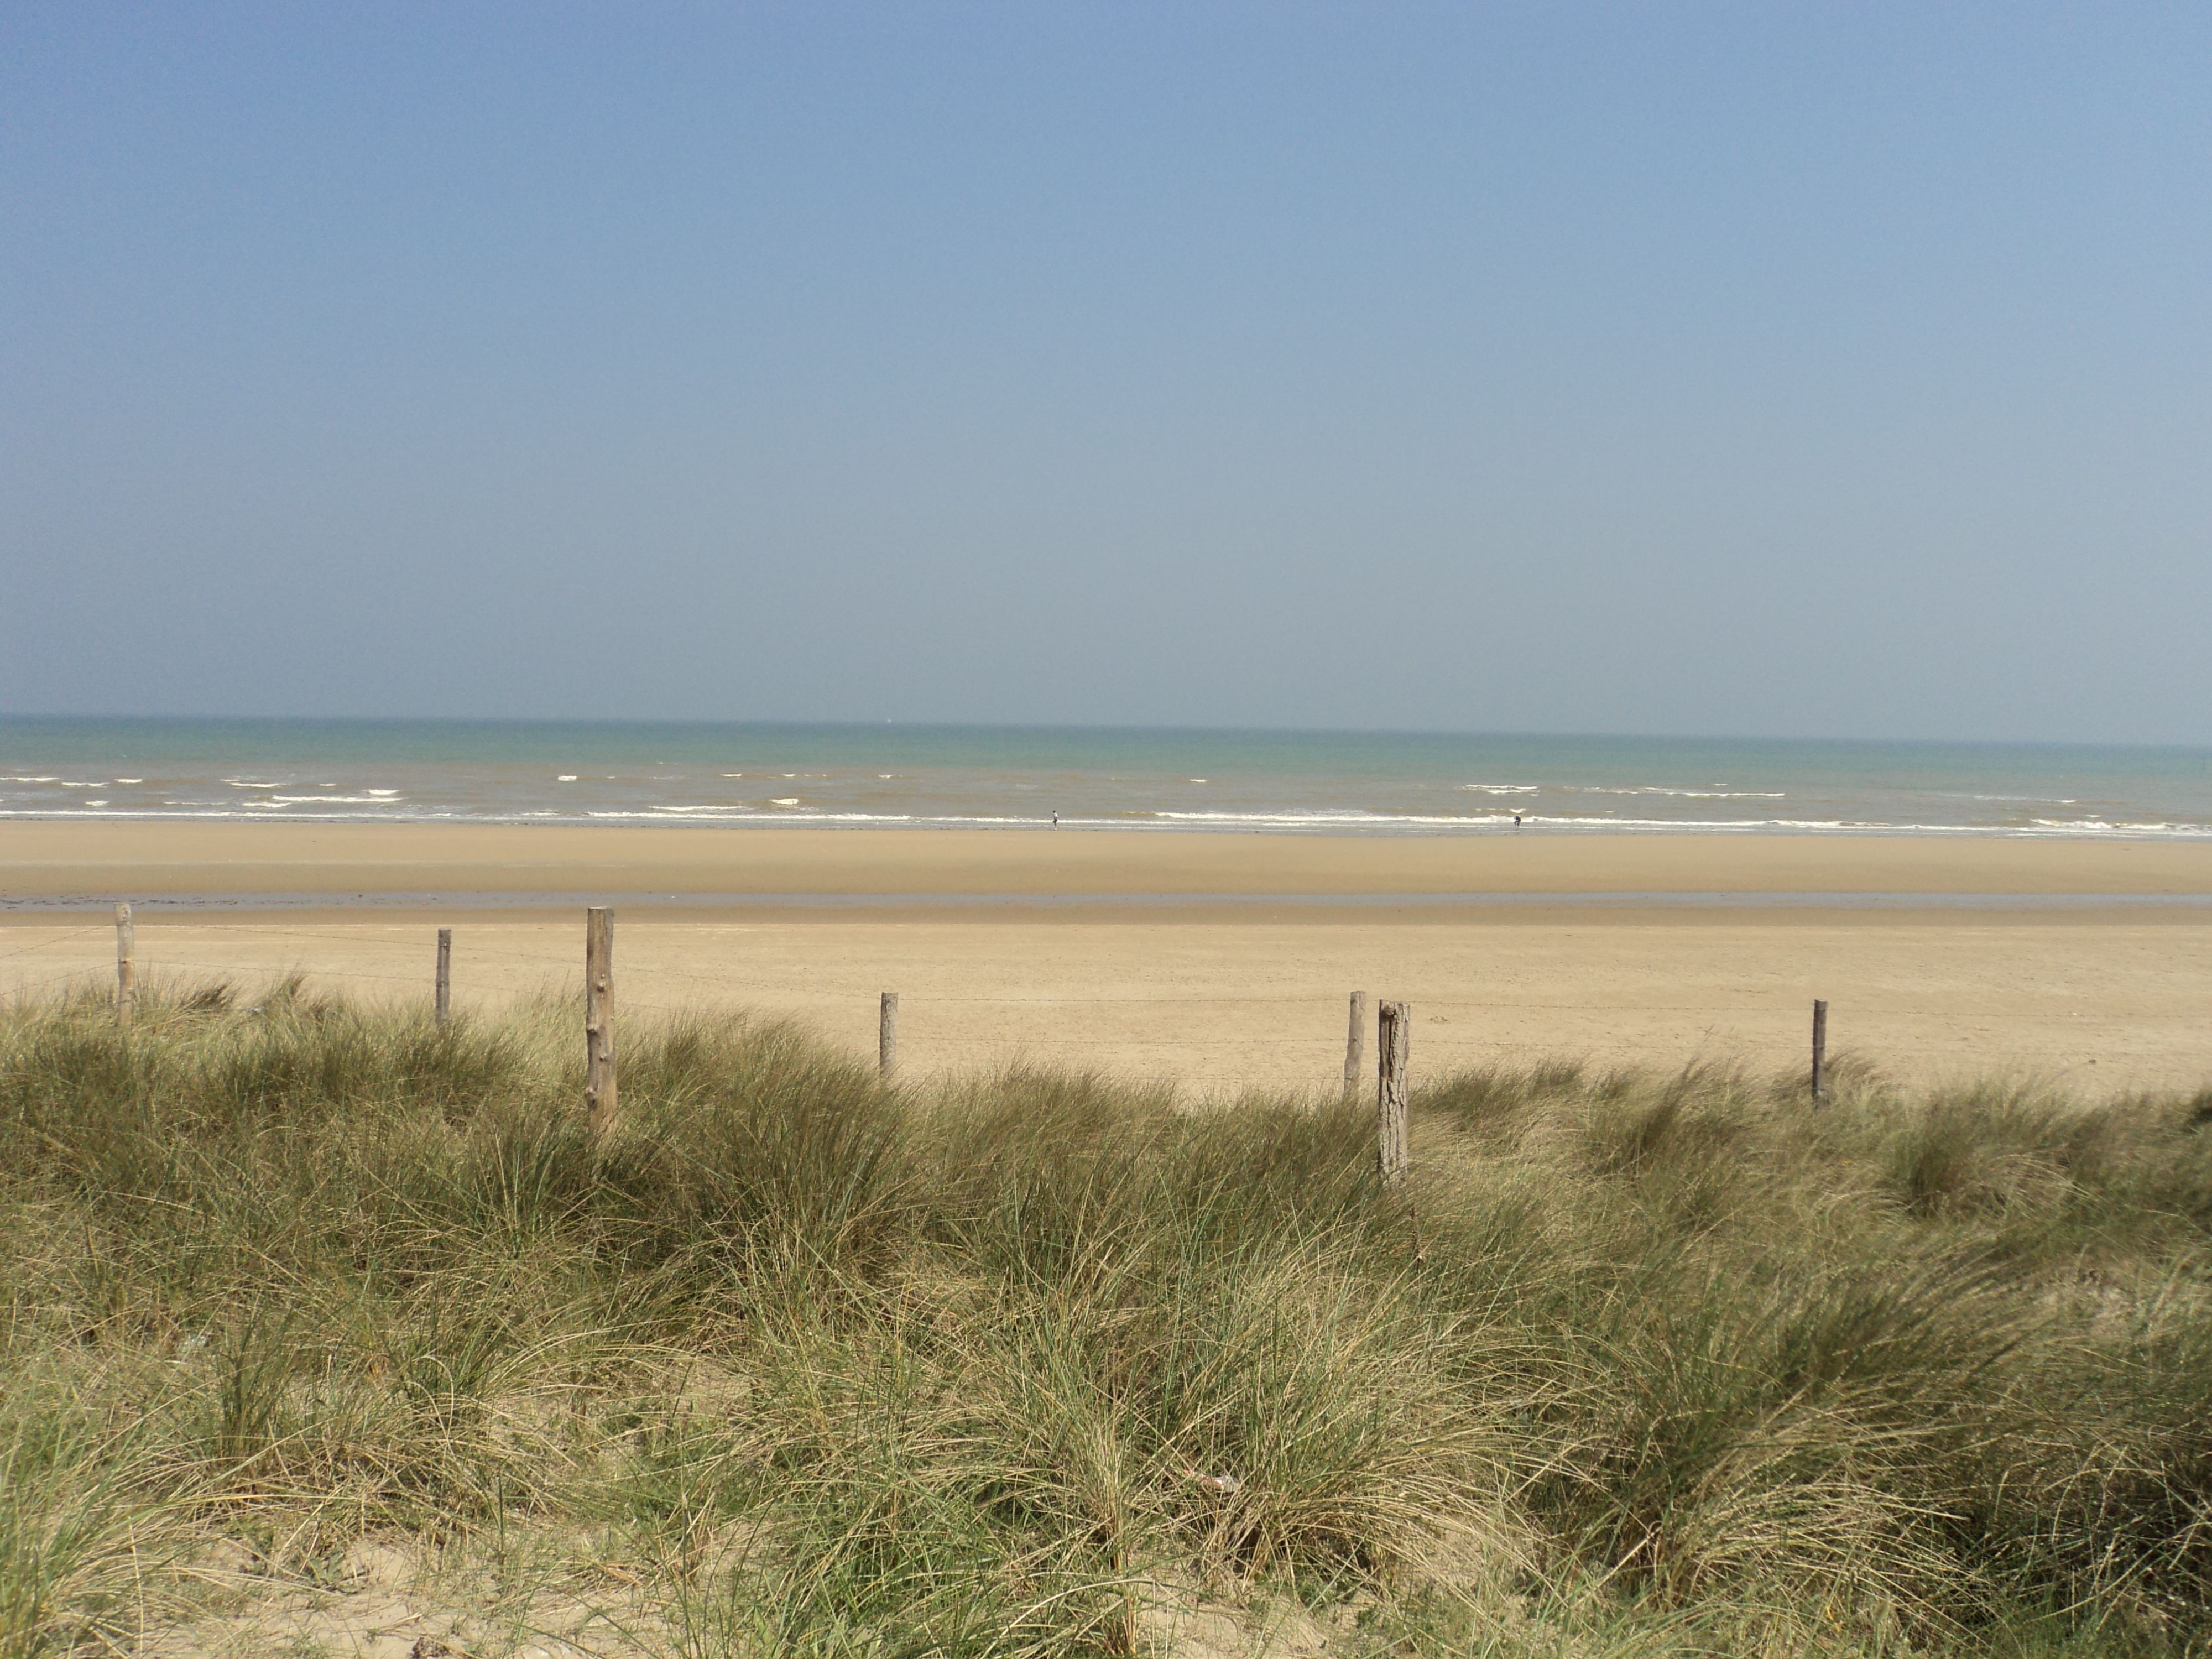 d-day beaches cemetery